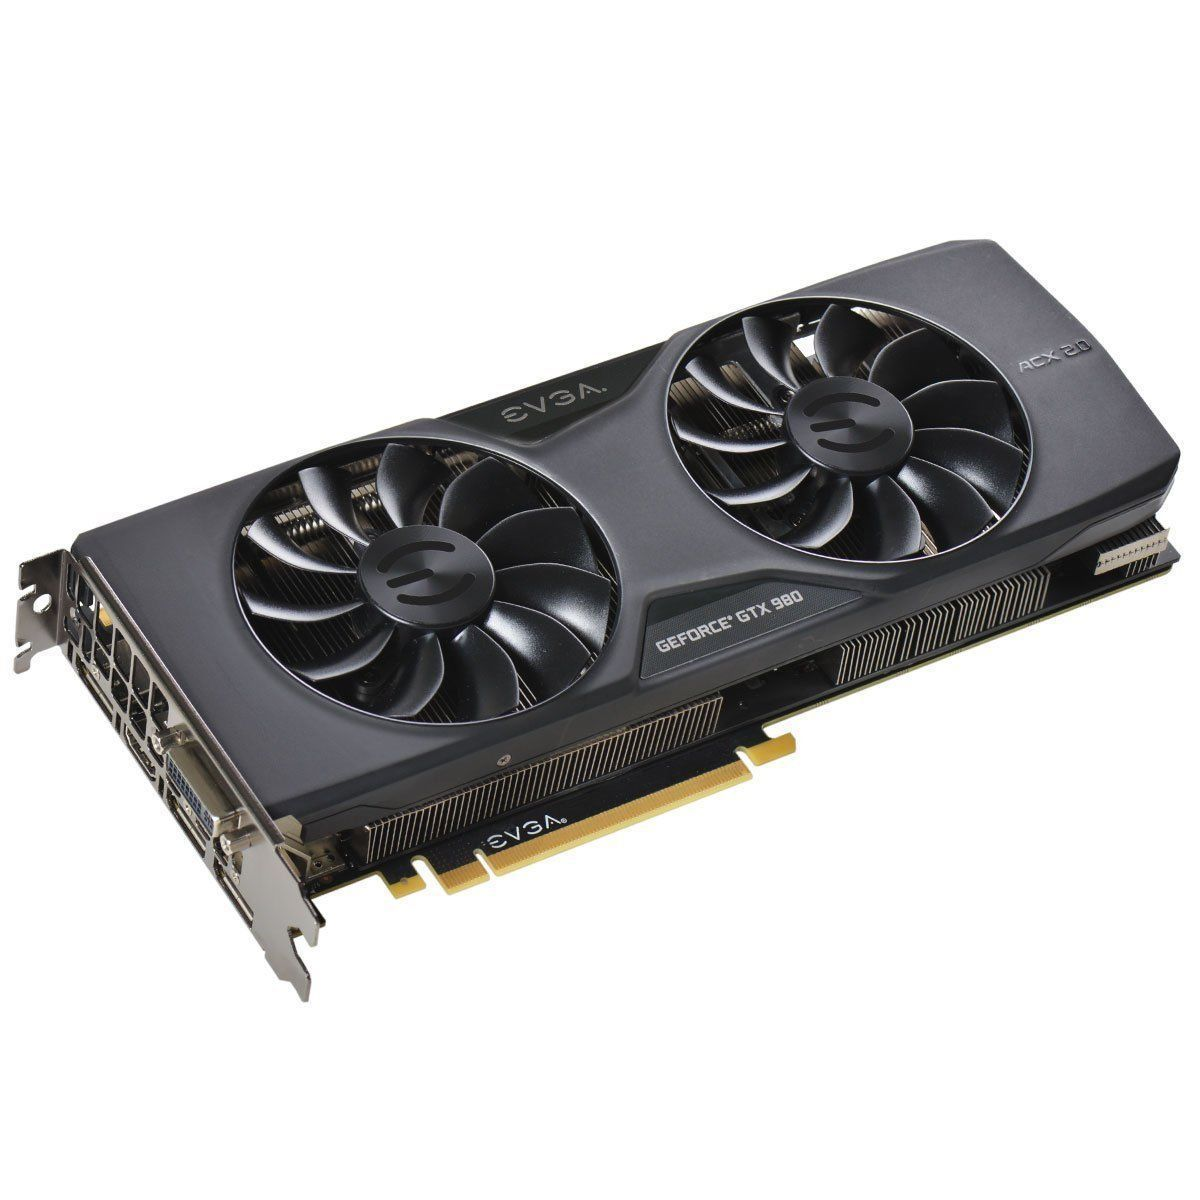 EVGA 04GP42983KR GeForce GTX 980 Superclocked 4GB GDDR5 PCI-E Graphics Card